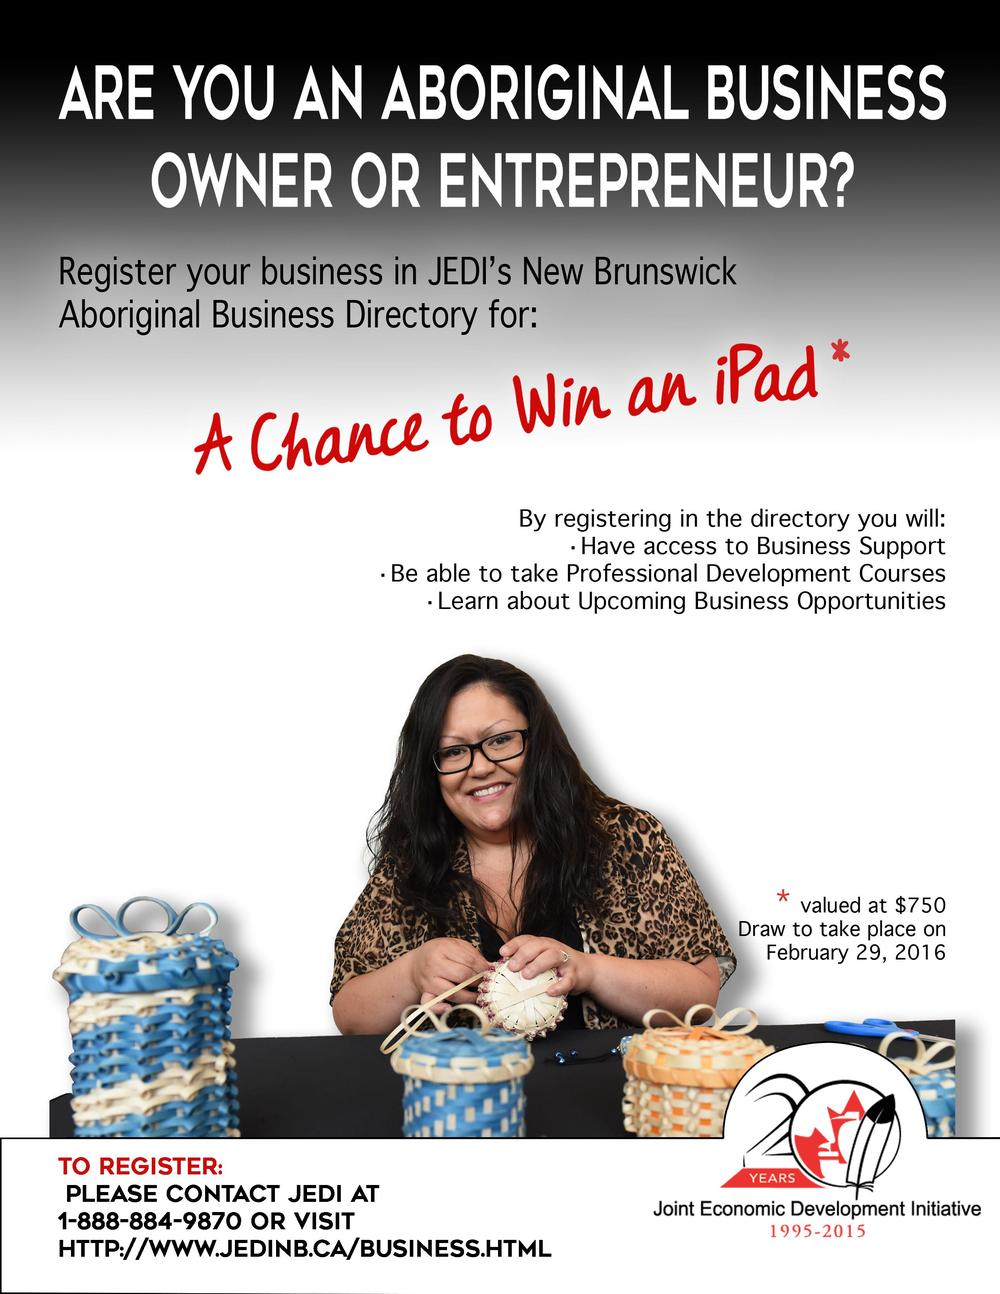 Aboriginal Business Owners Can Win an iPad